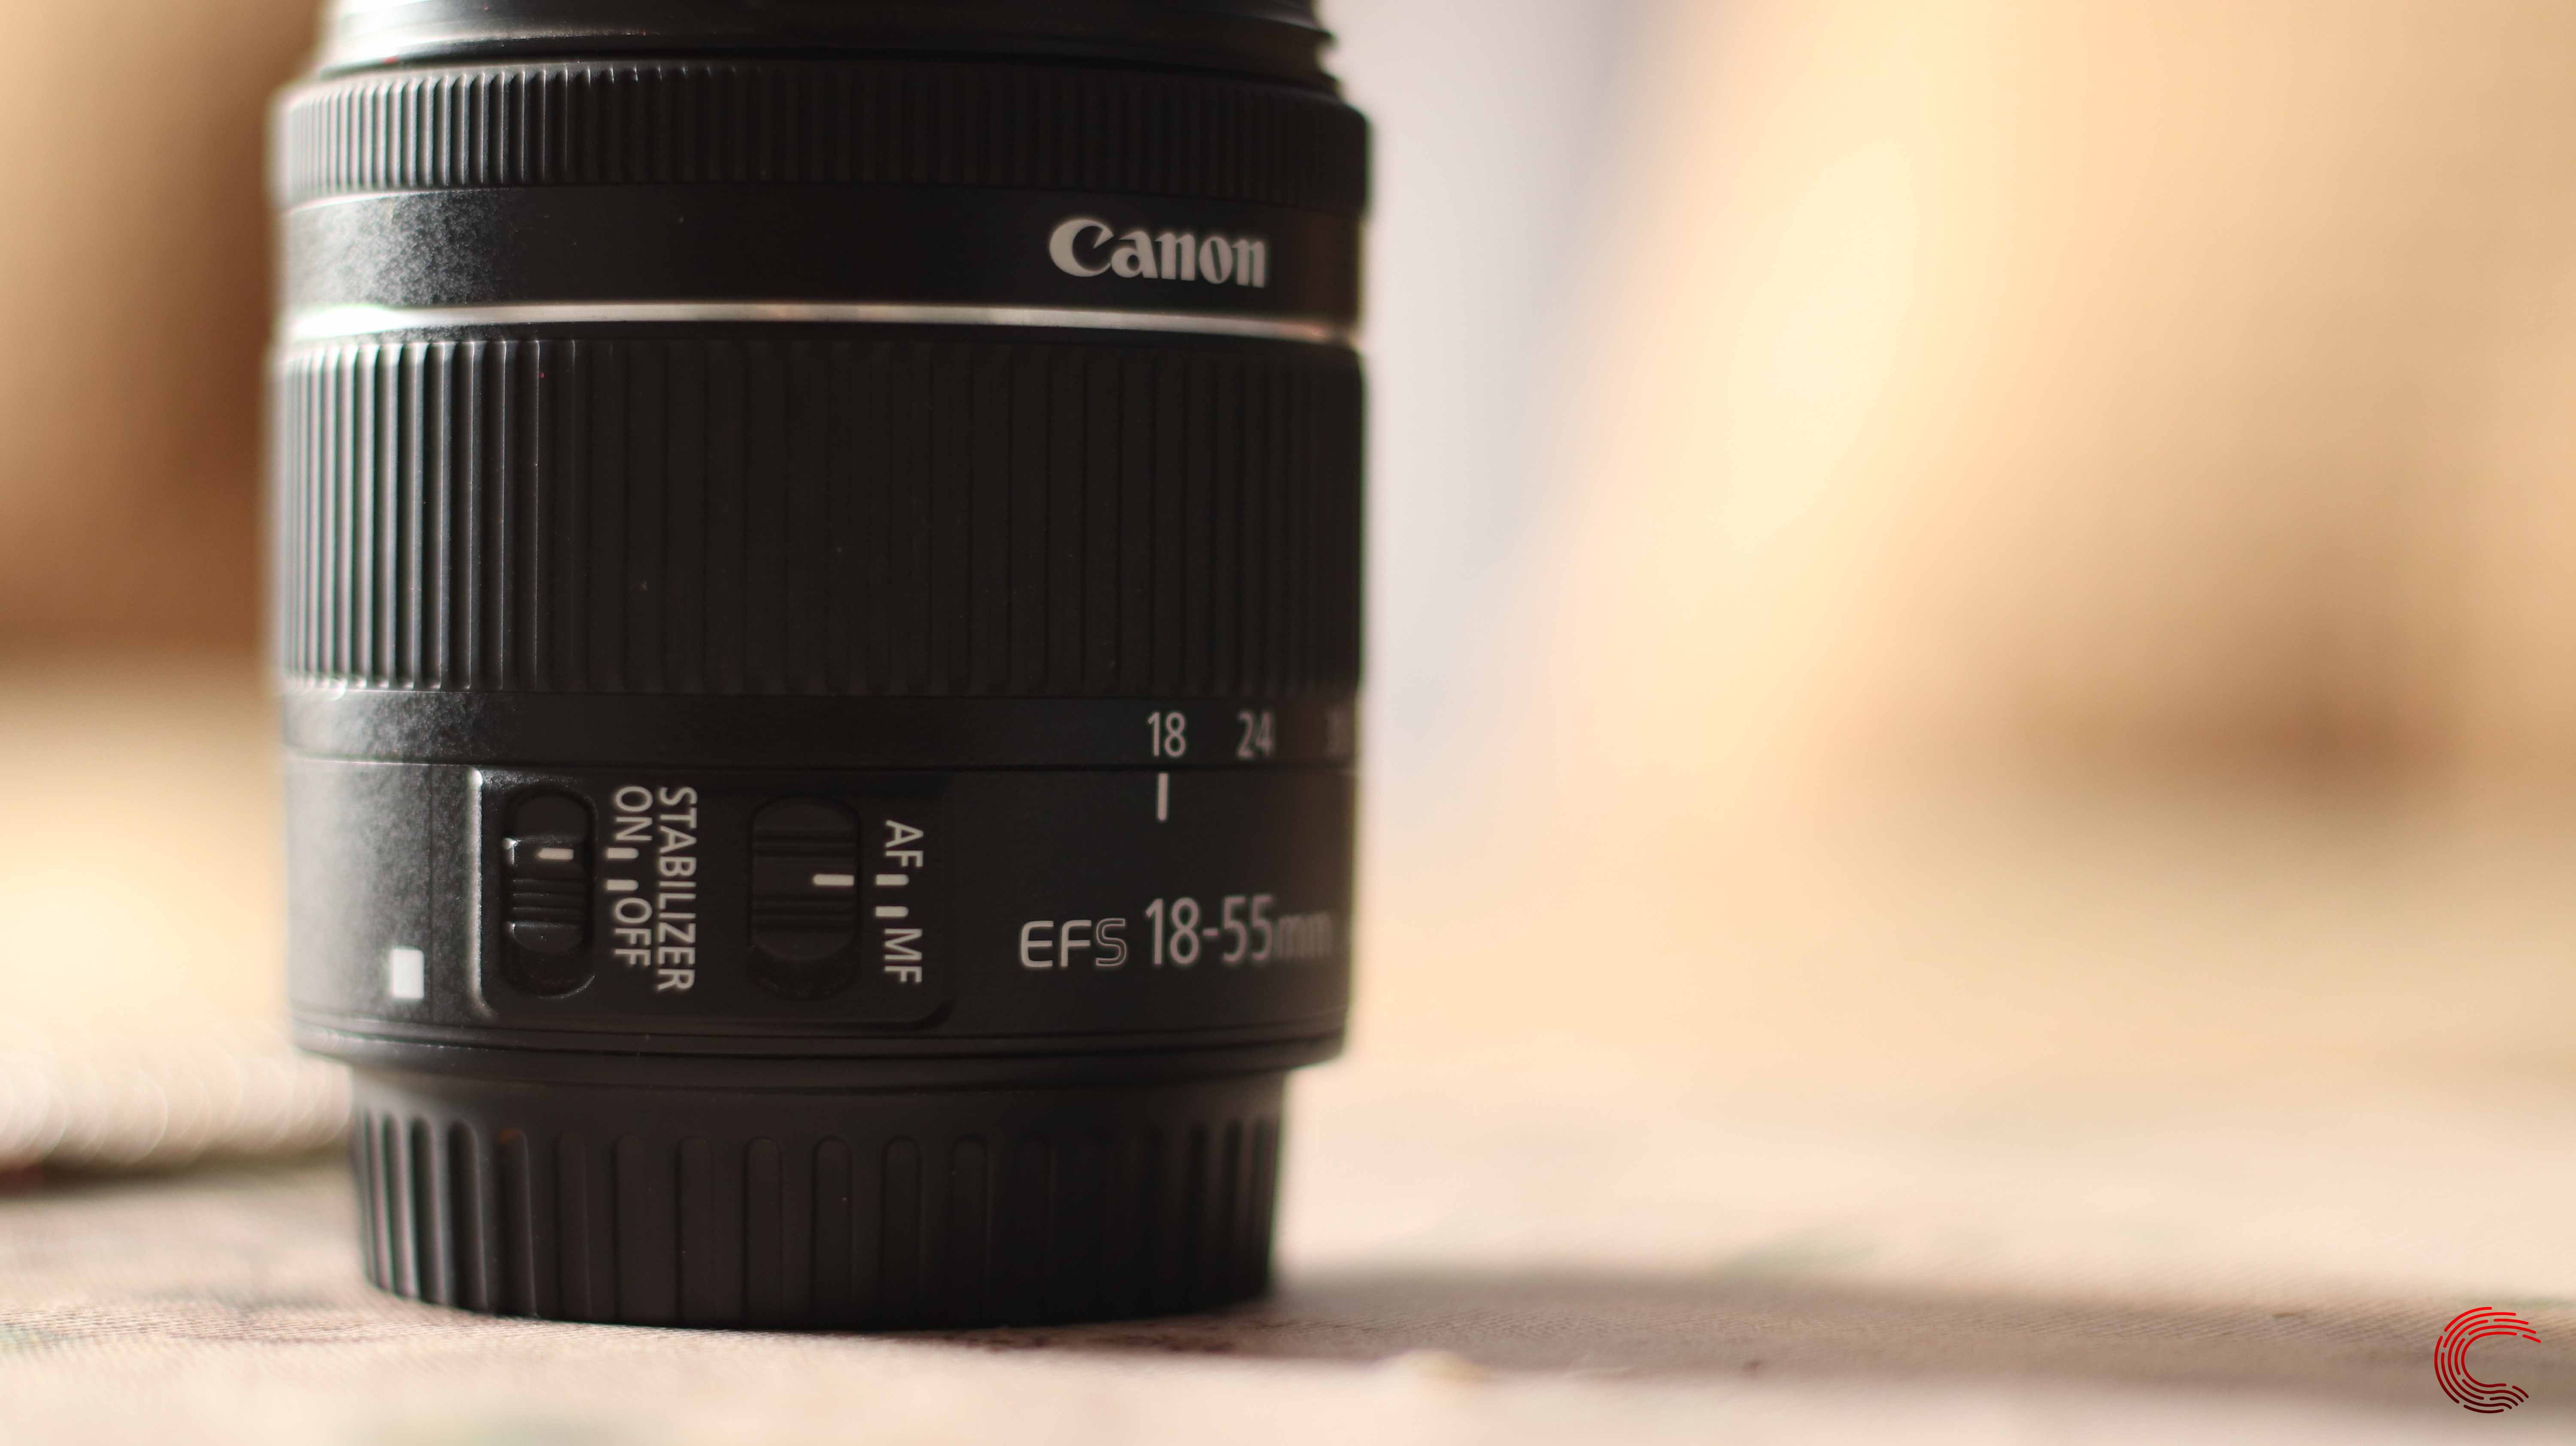 Why should you use manual focus? Everything you need to know